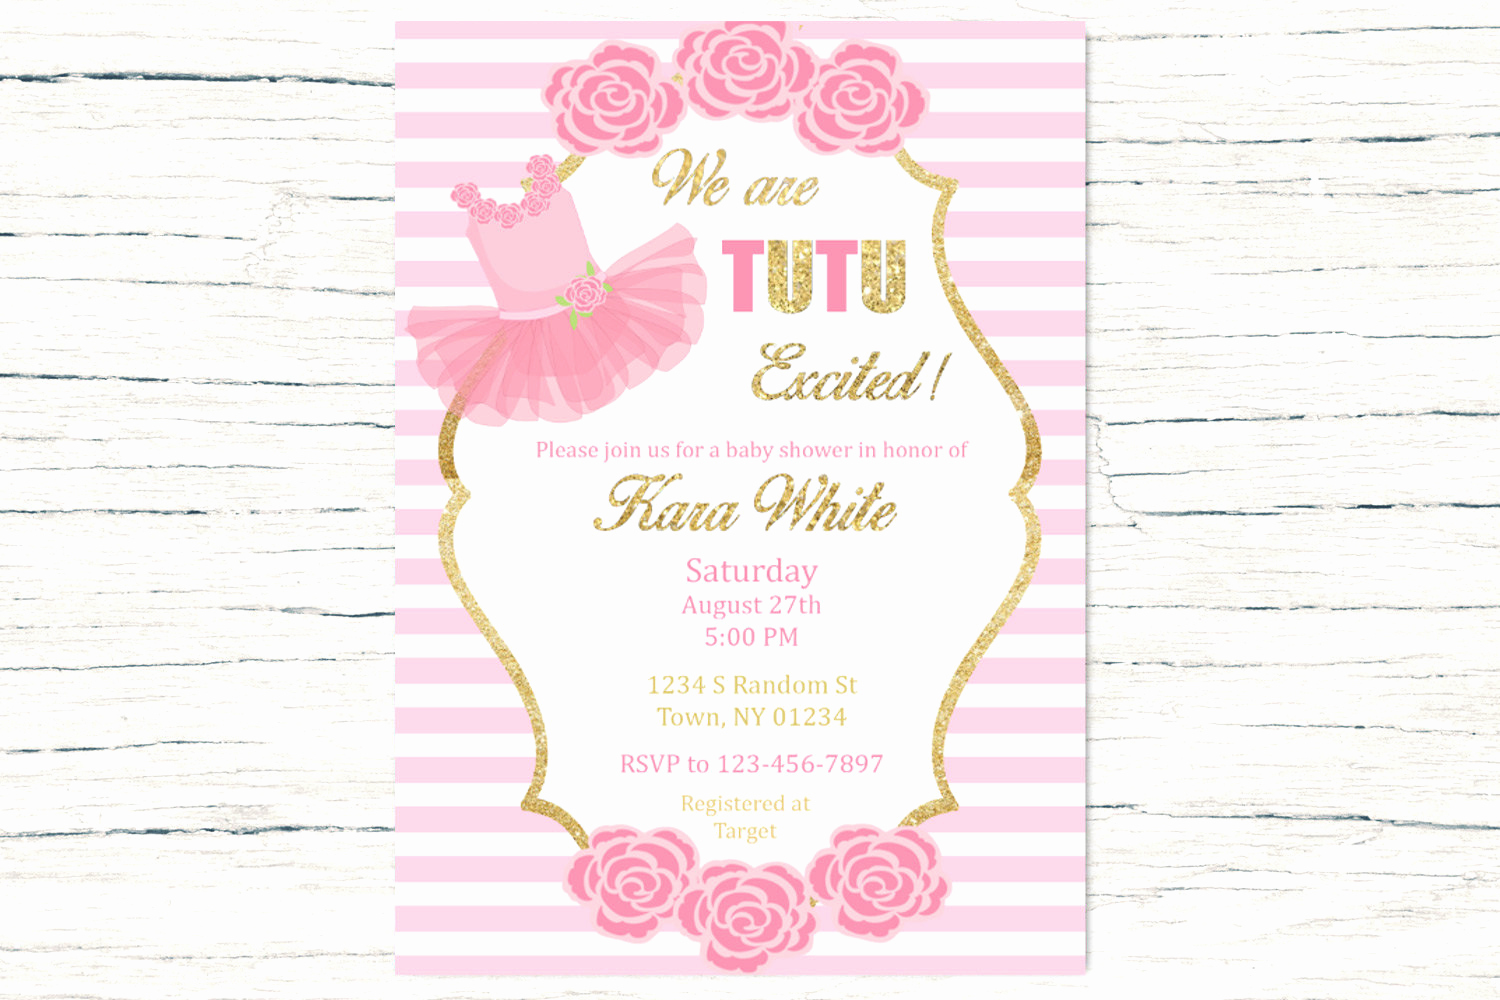 Tutu Baby Shower Invitation Beautiful Tutu Excited Baby Shower Invitation Pink and Gold Baby